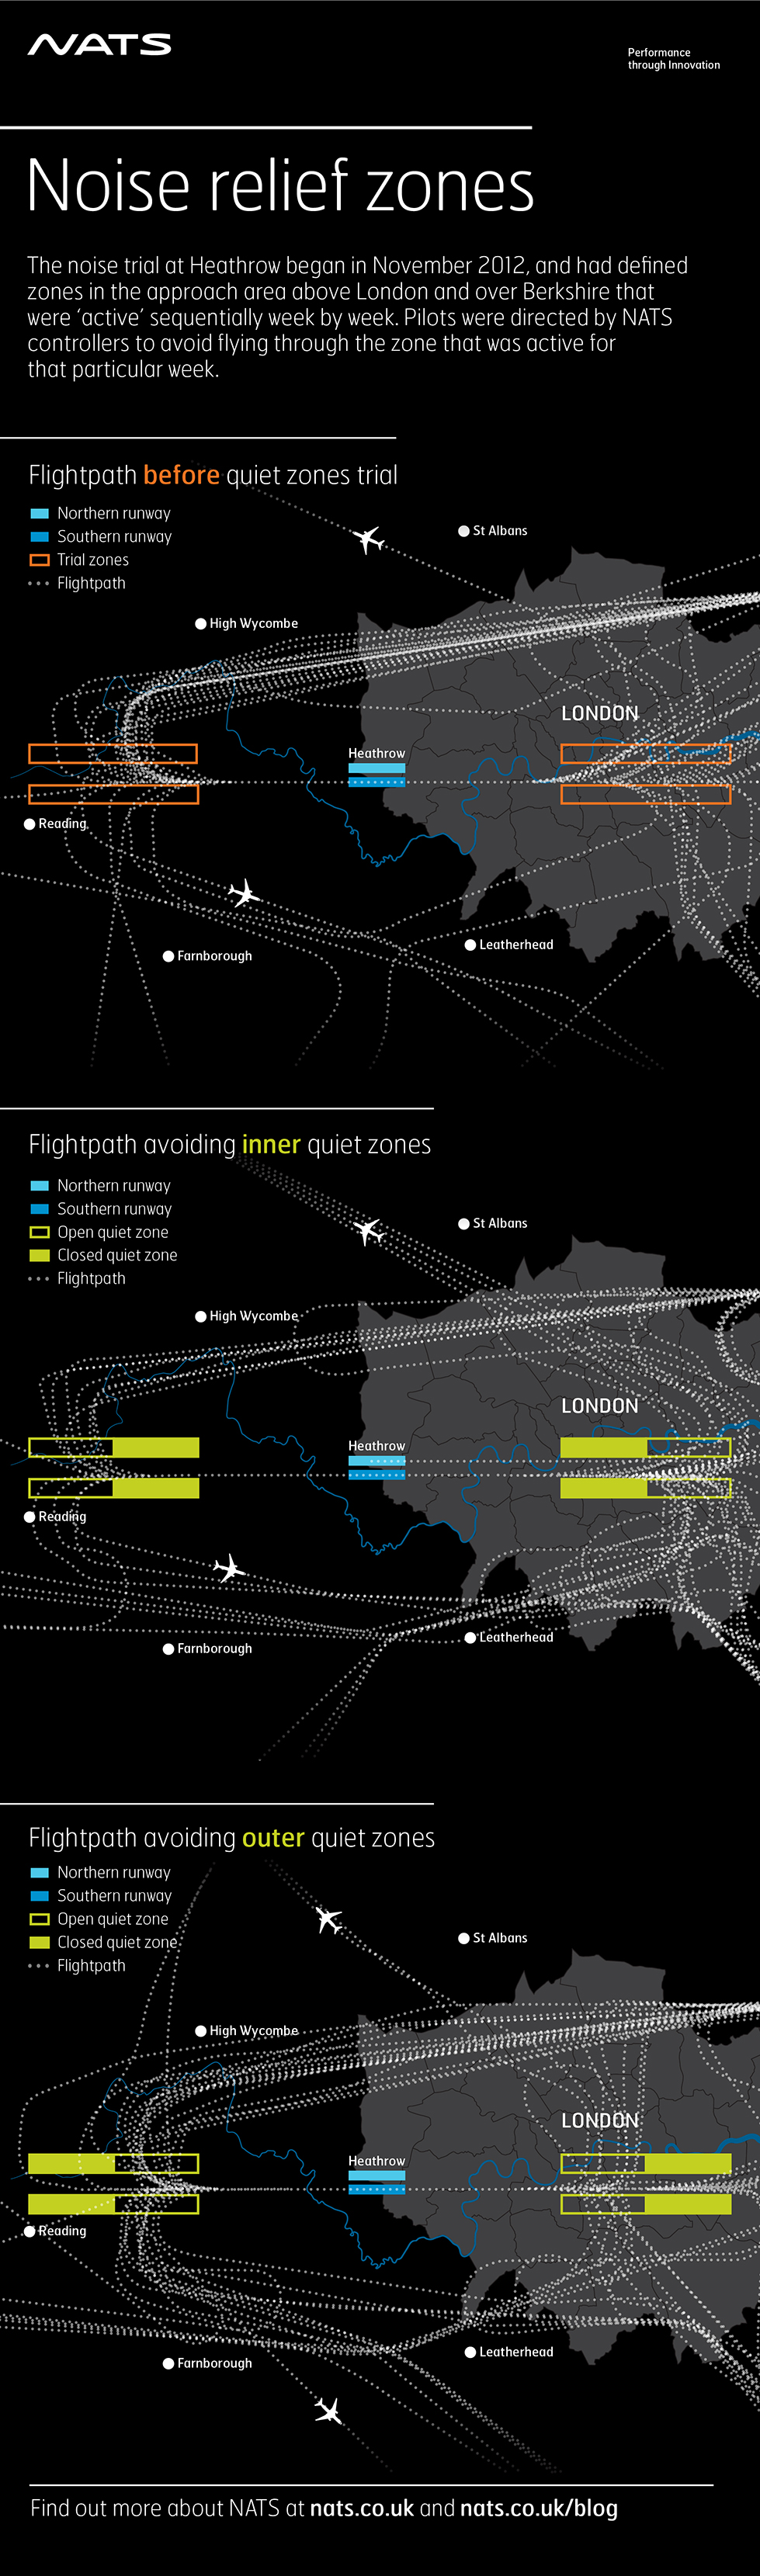 A 'Noise Relief Zones' infographic we created for NATS